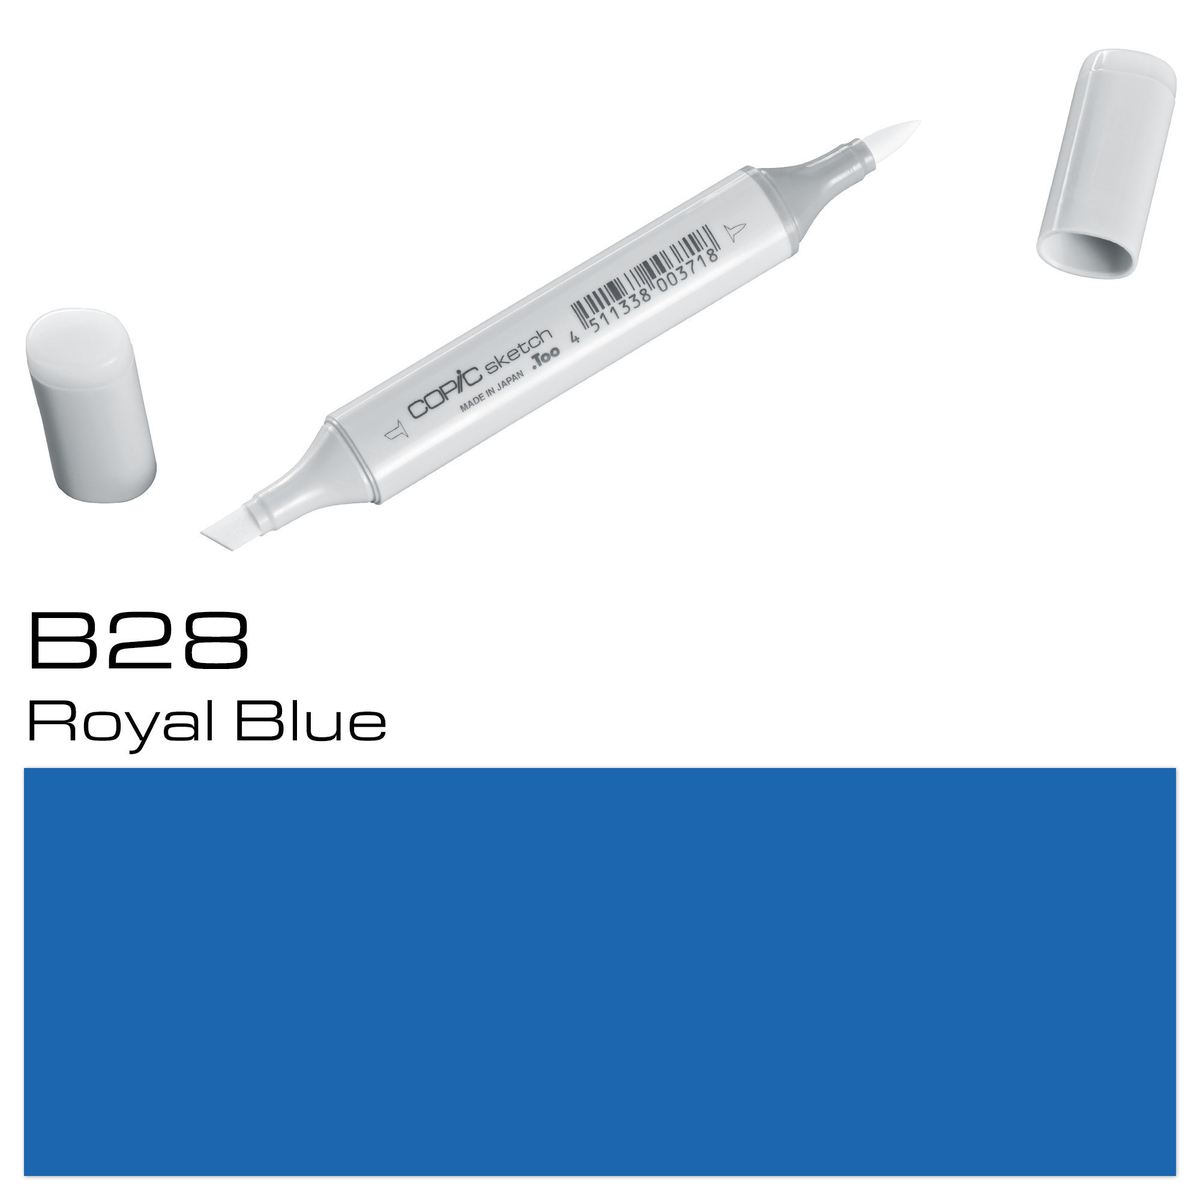 Copic Sketch B28 royal blue